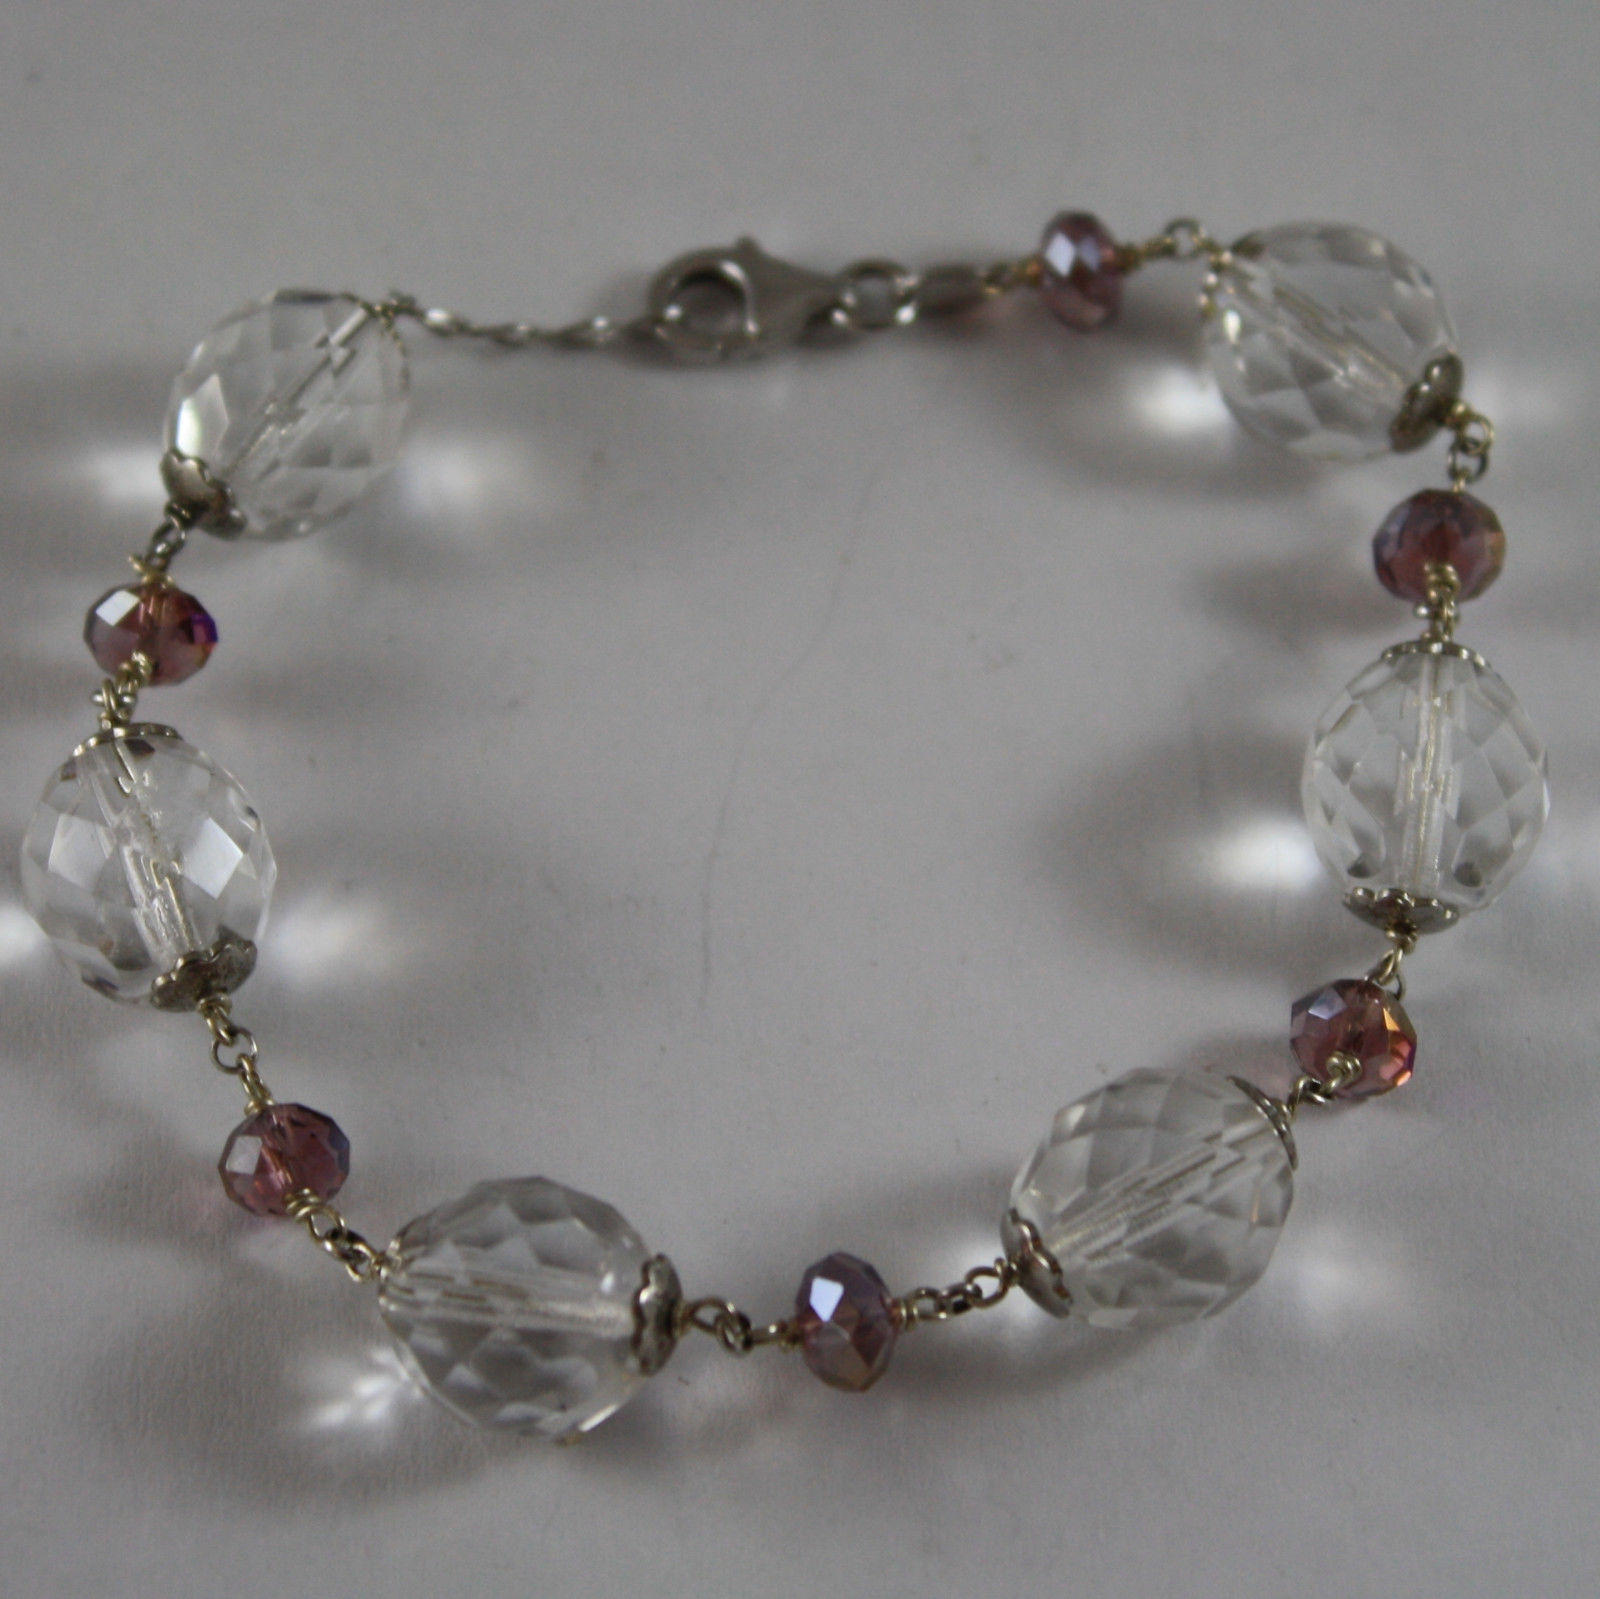 925. RHODIUM SILVER BRACELET WITH PURPLE AND TRANSPARENT CRYSTALS